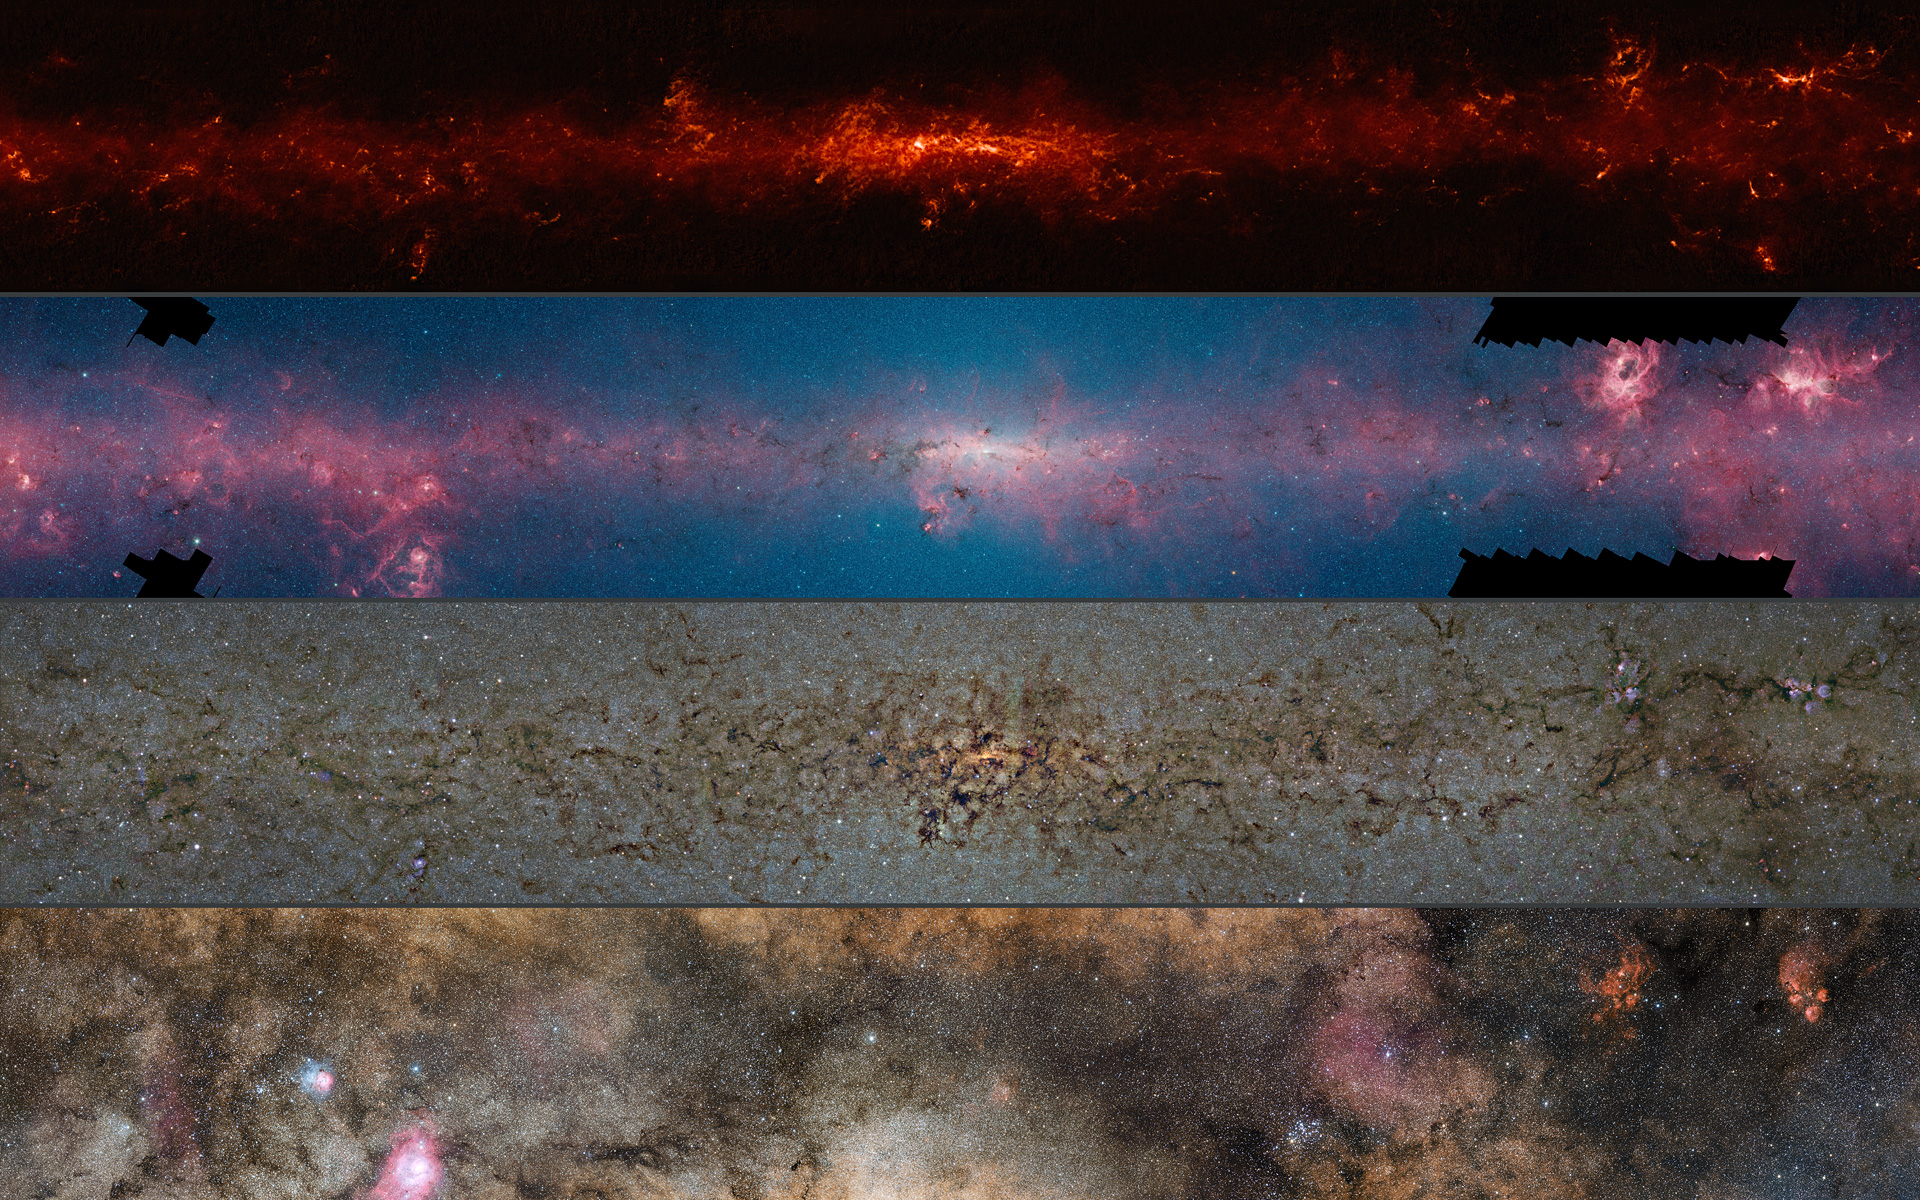 This comparison shows the central regions of the Milky Way observed at different wavelengths.